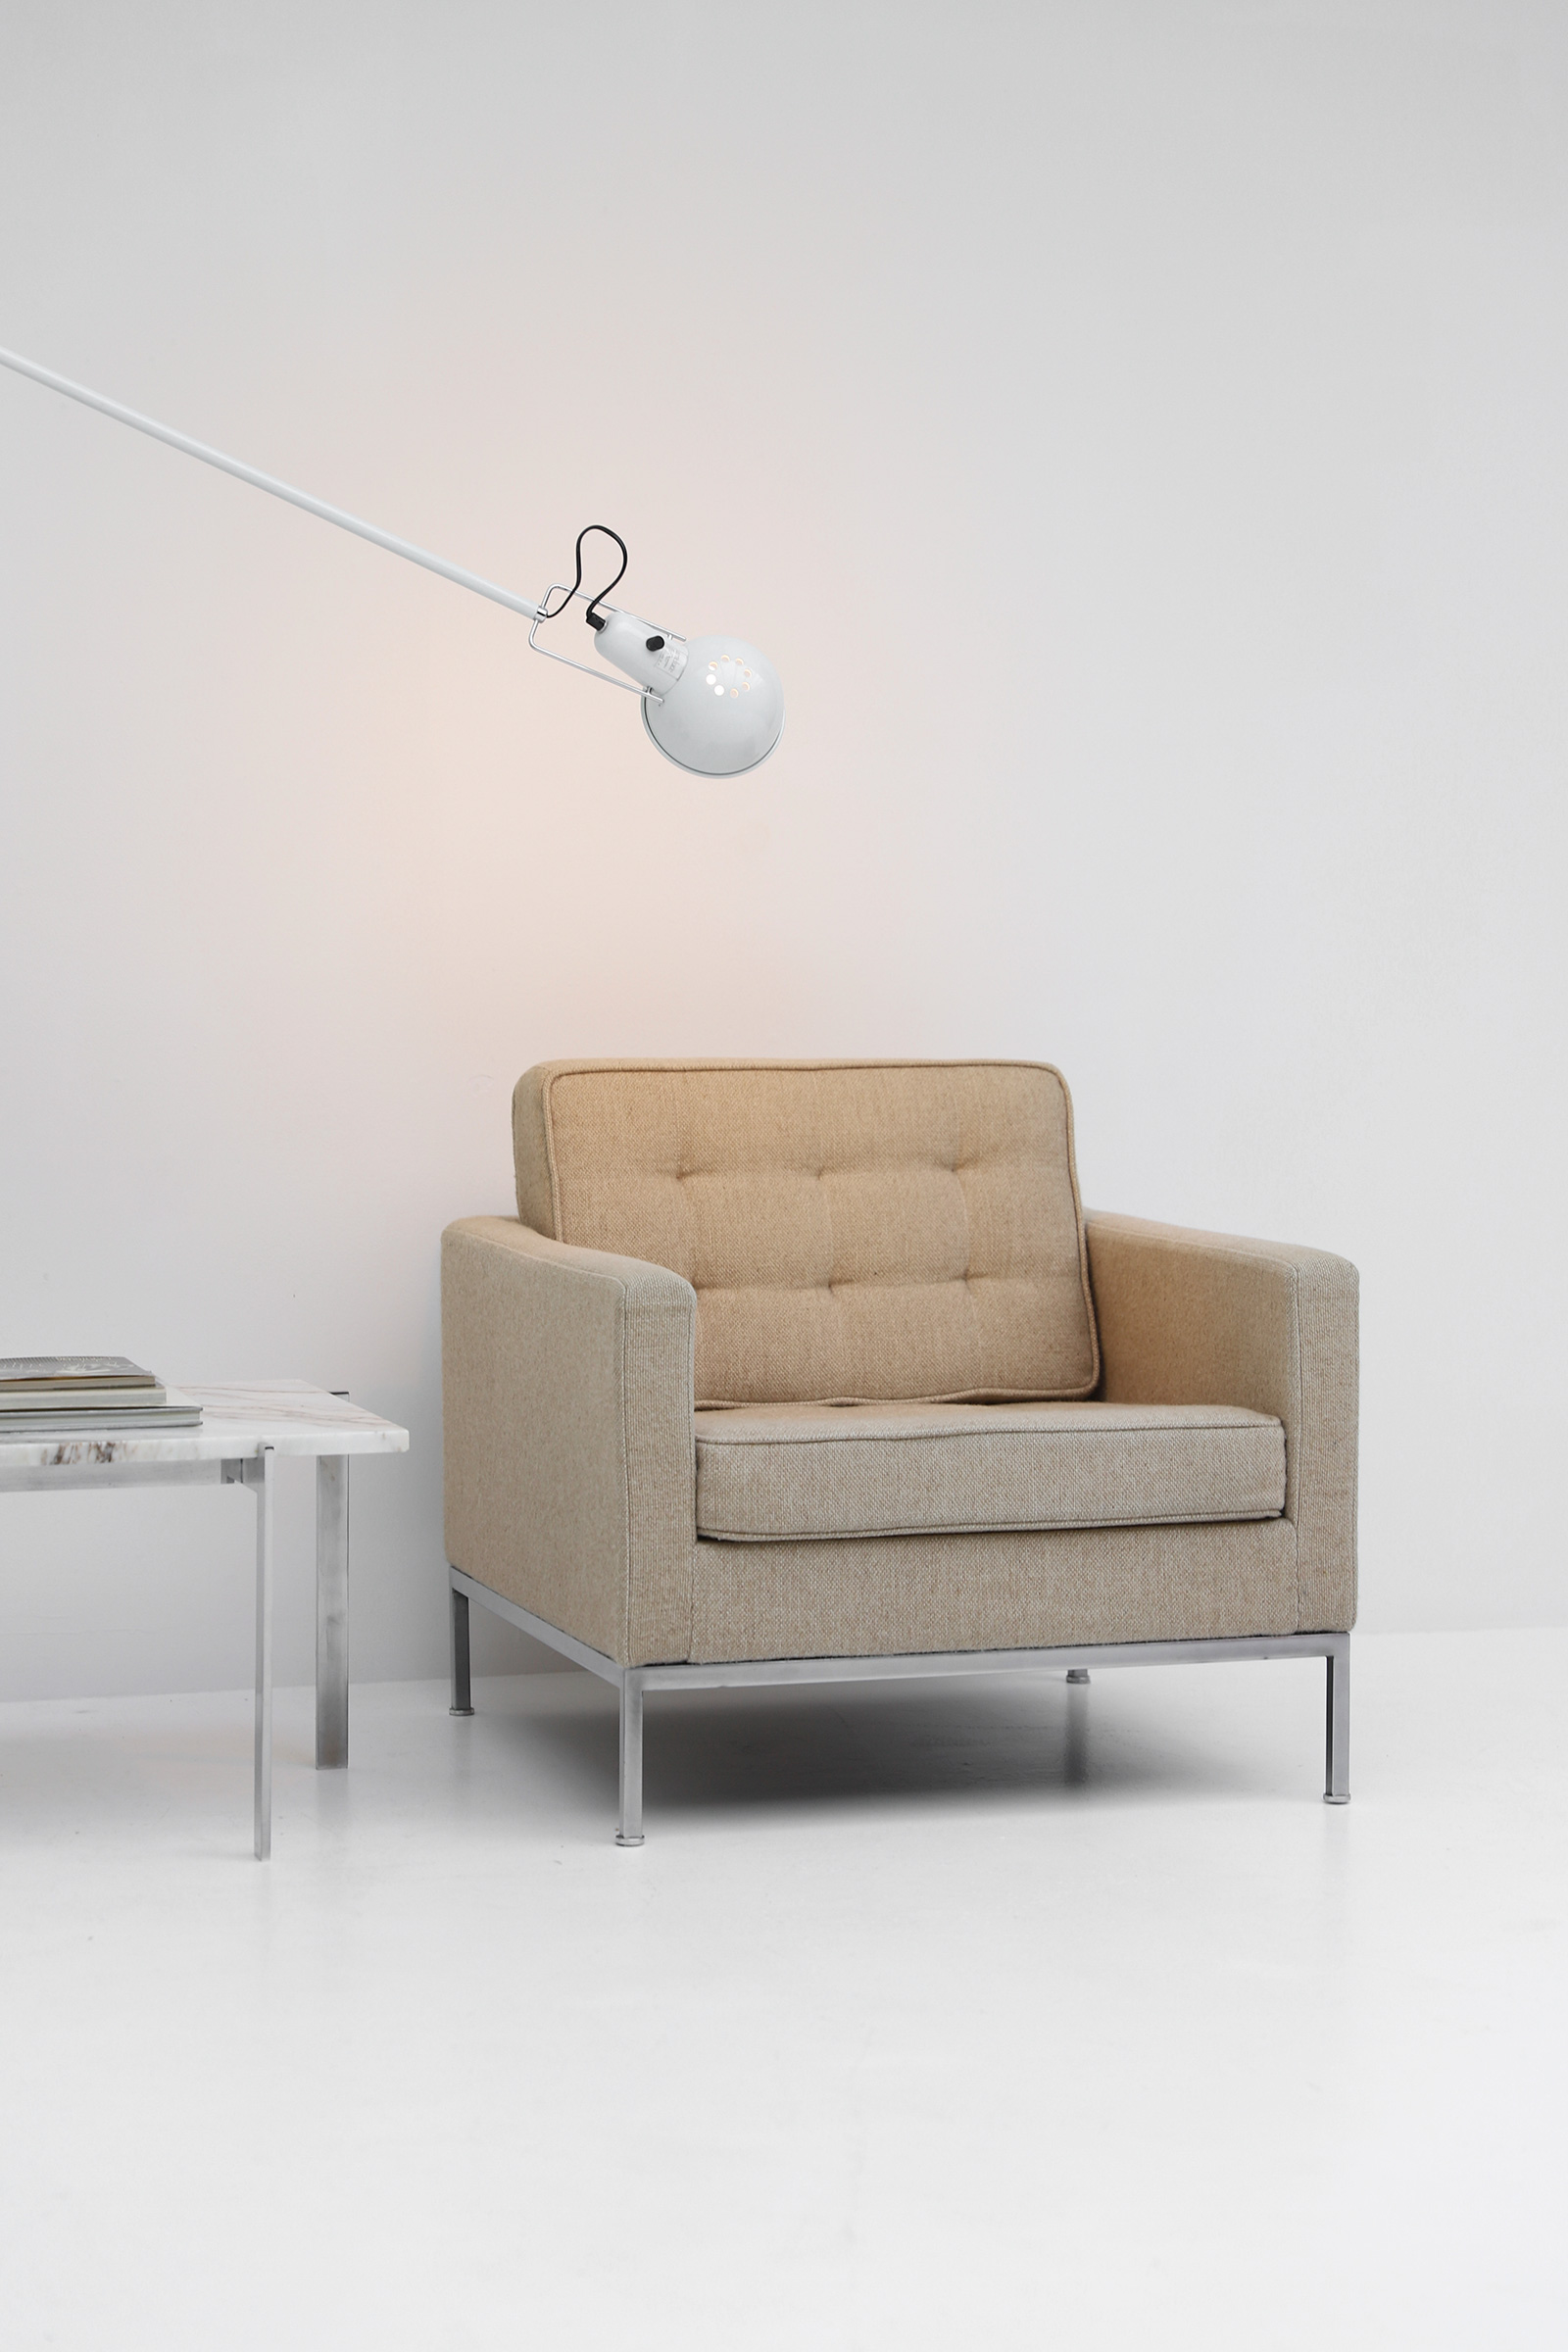 Florence Knoll Arm Chairsimage 3